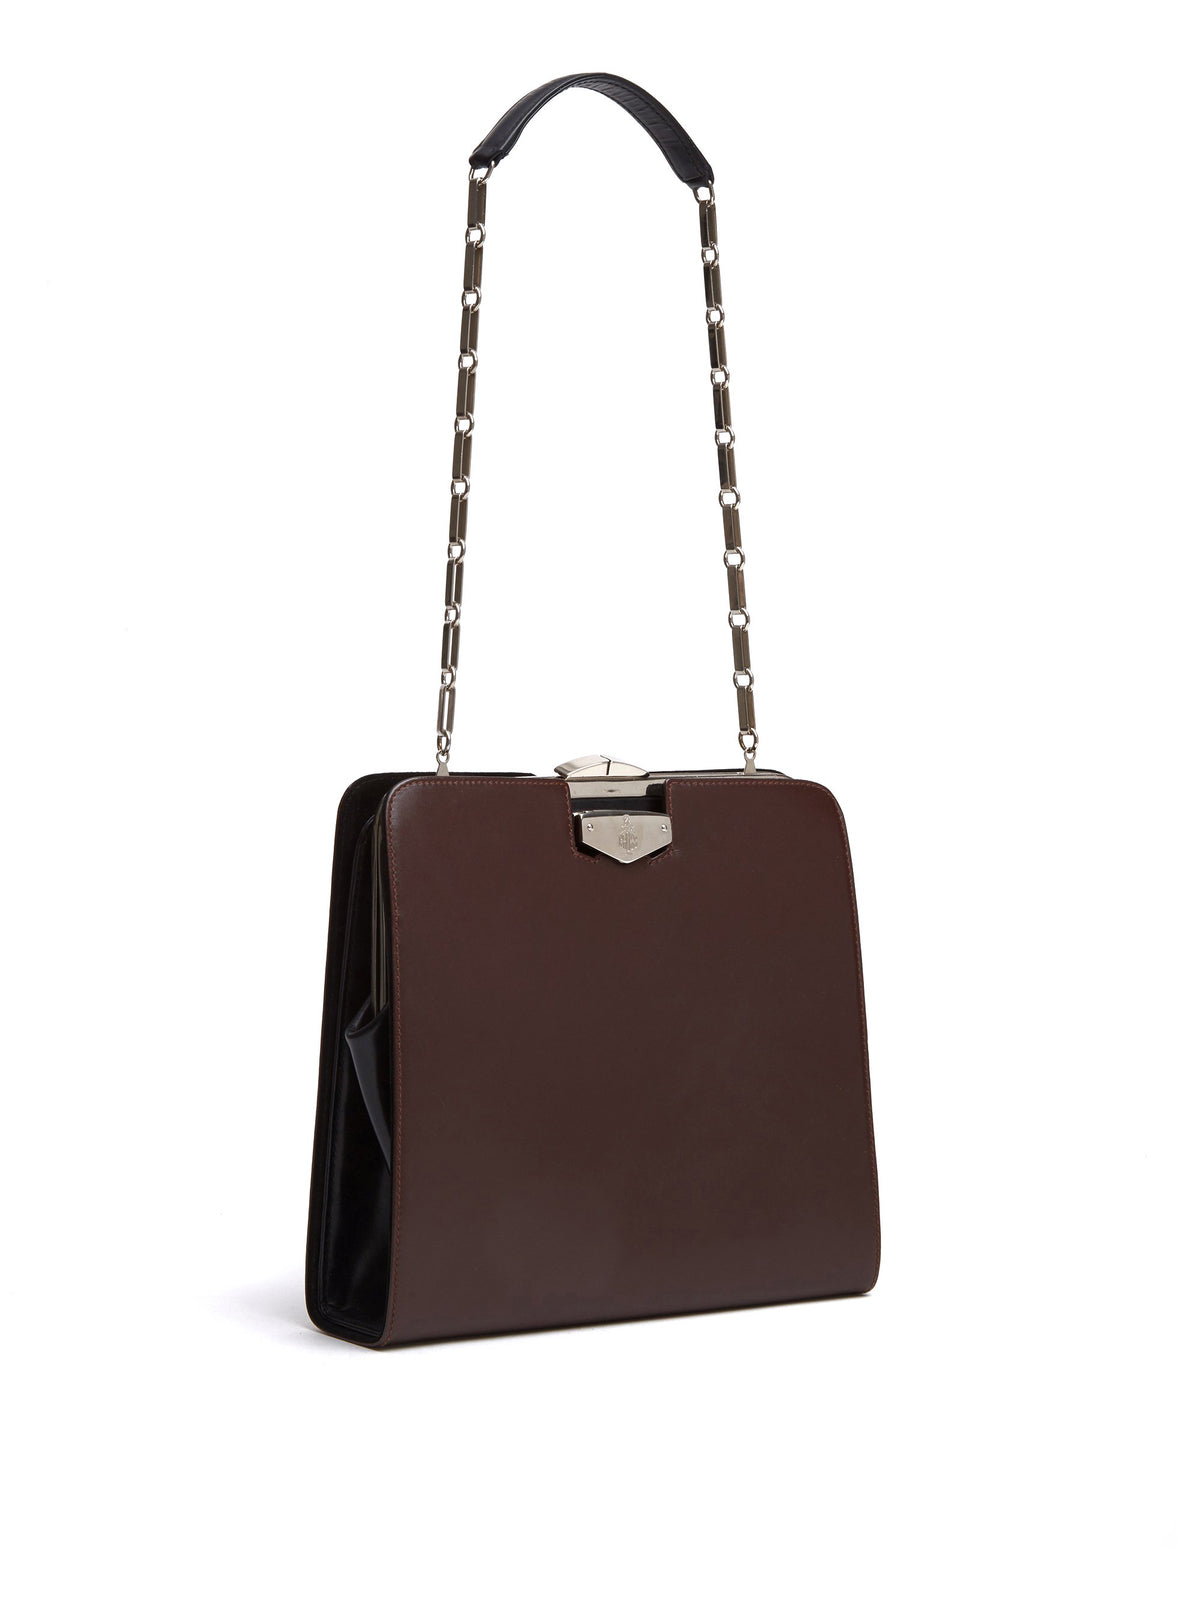 Vintage Convertible Leather Bag